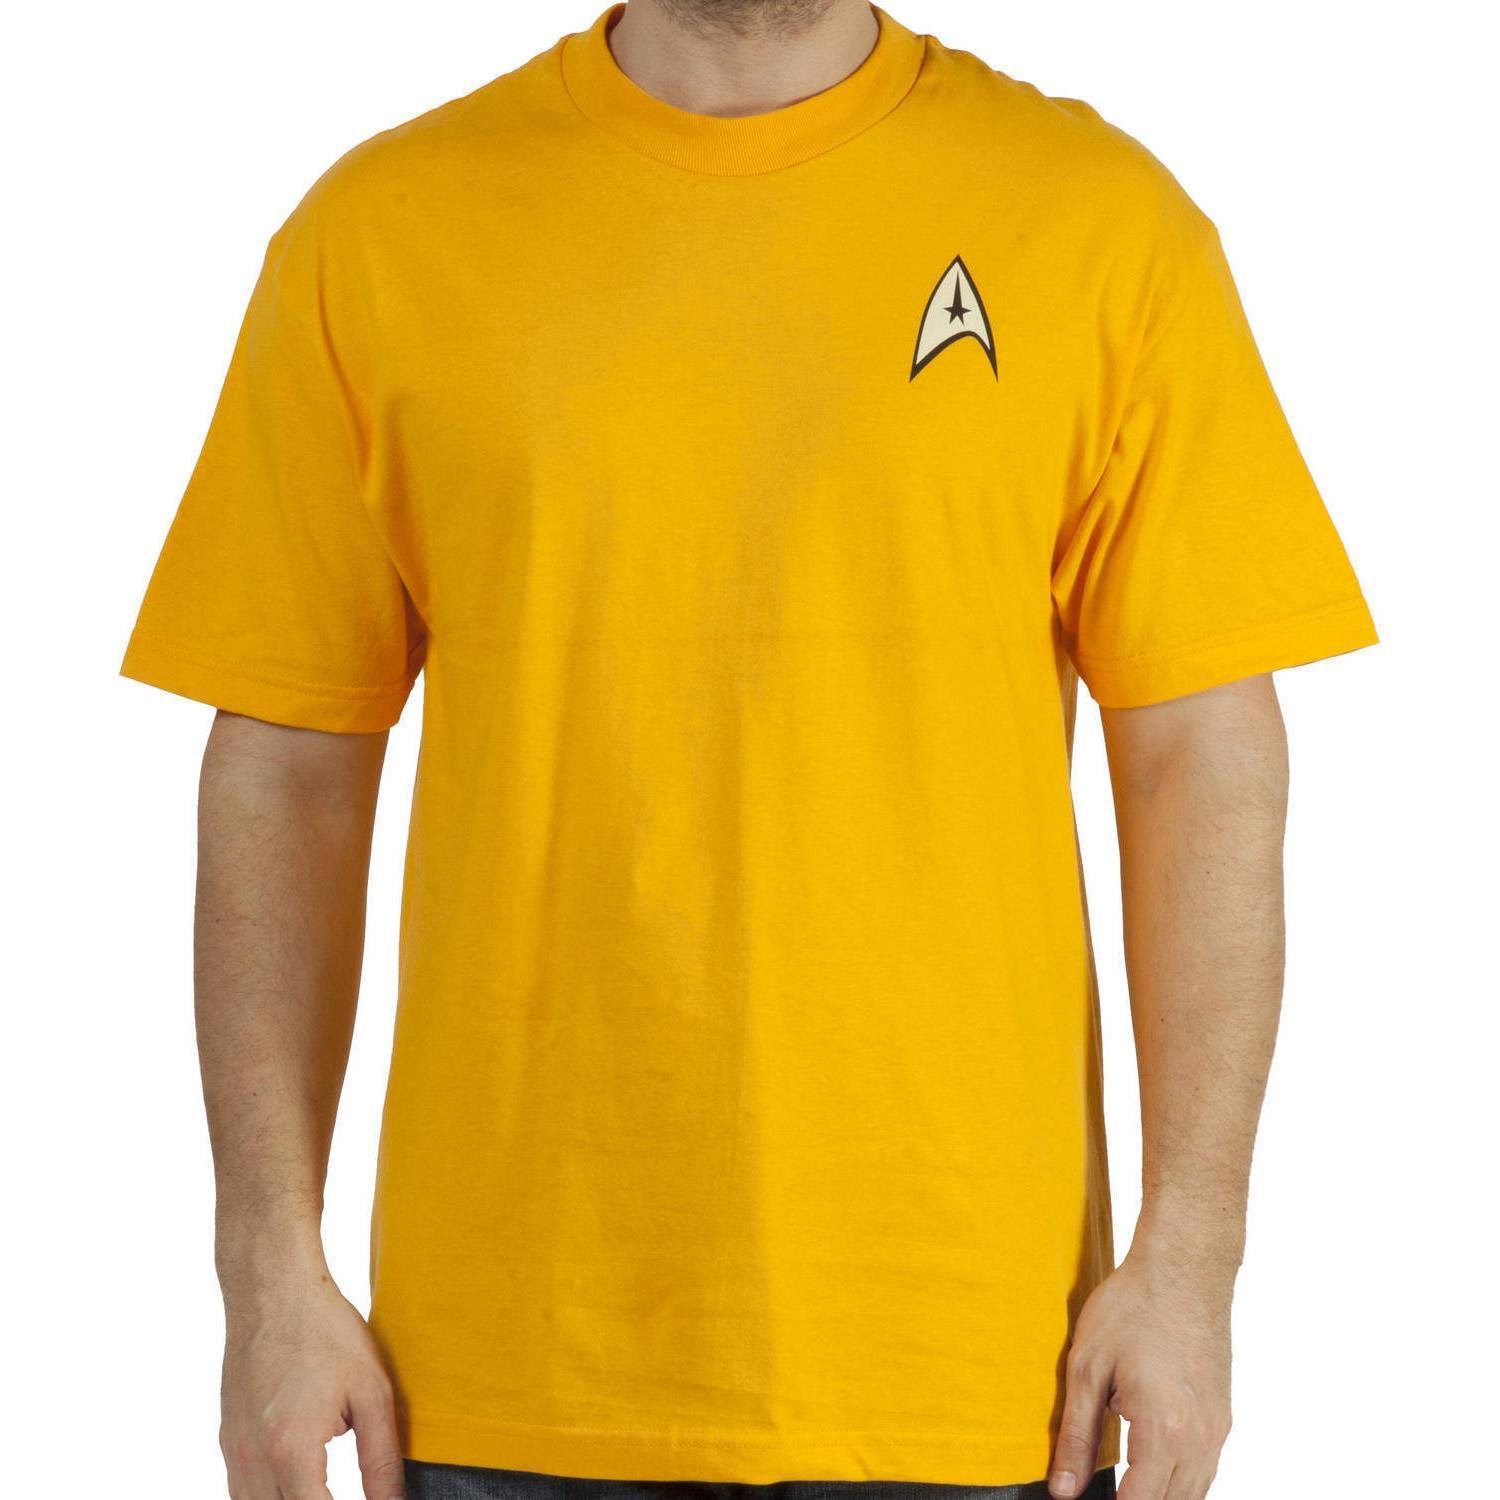 Command Gold Uniform Tee